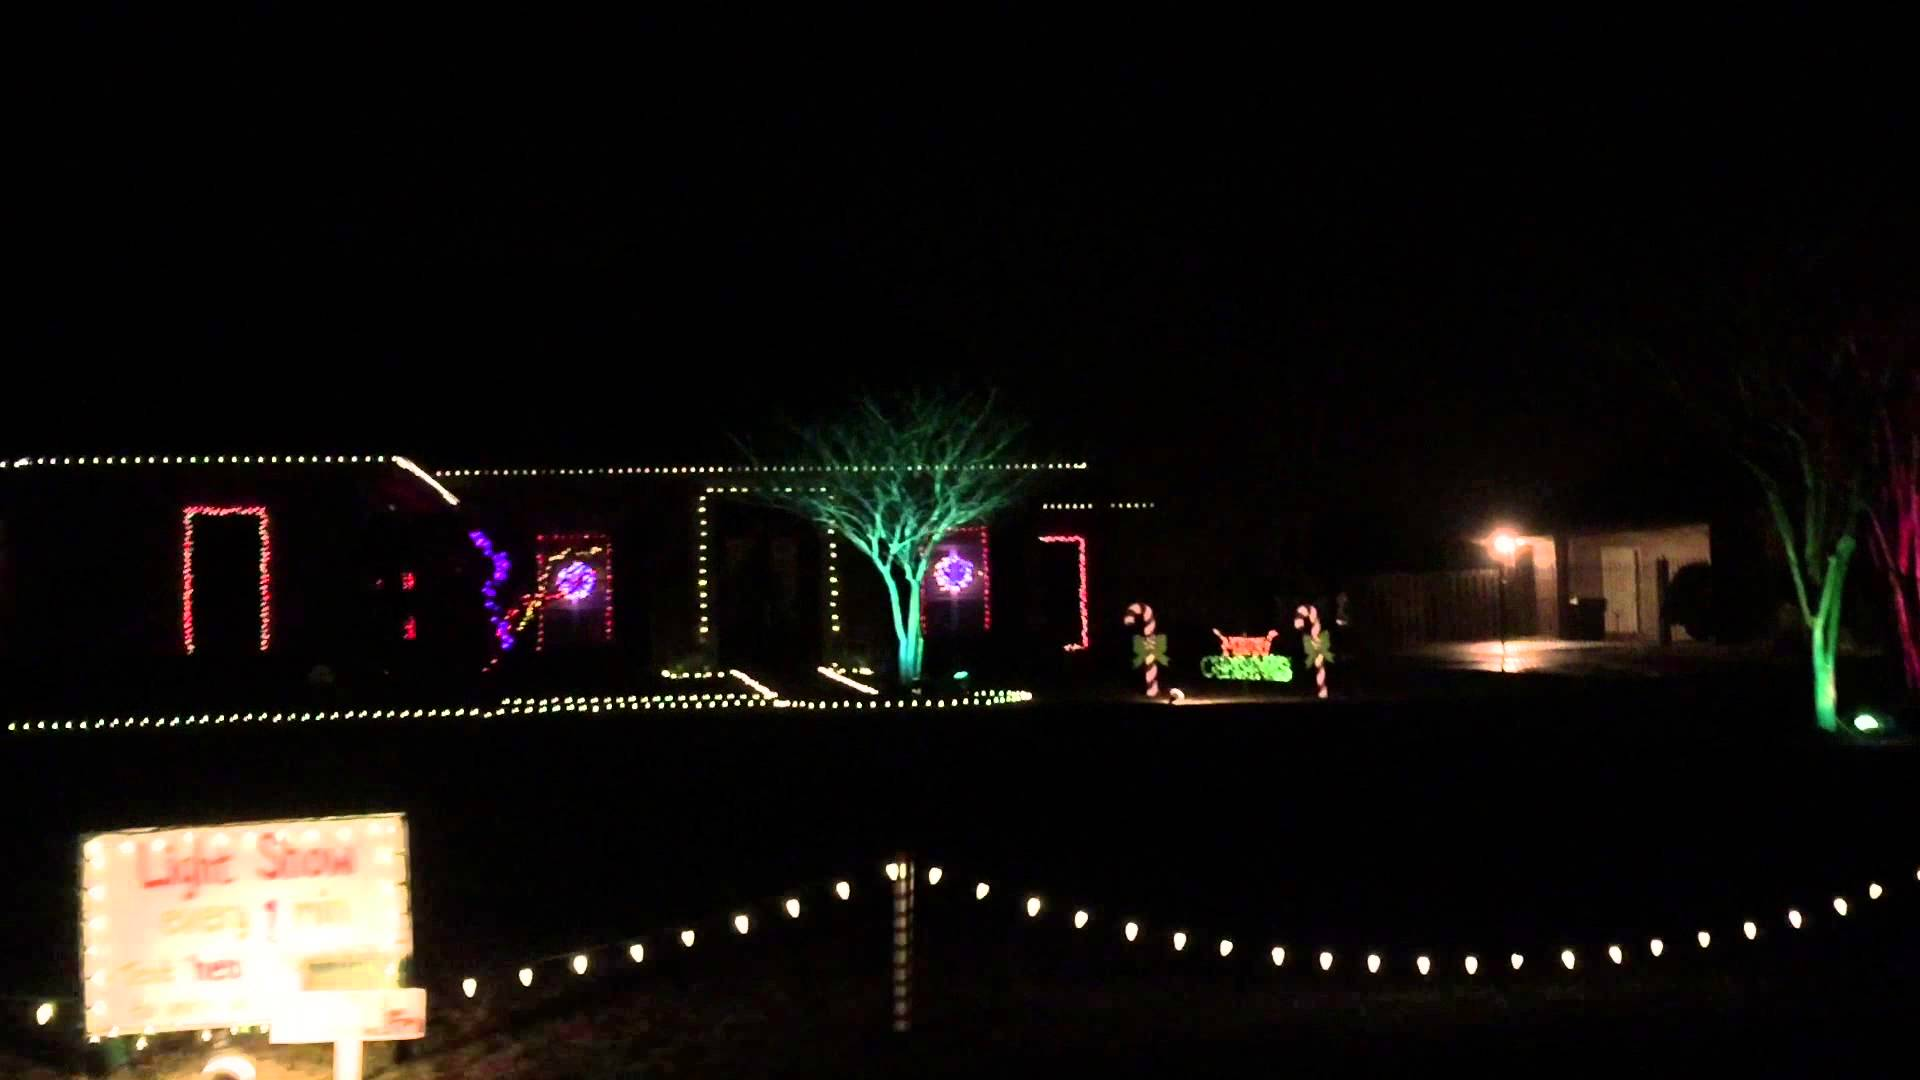 how to sync music to holiday lights using a raspberry pi and lightshowpi piday raspberrypi raspberry_pi adafruit industries makers hackers artists